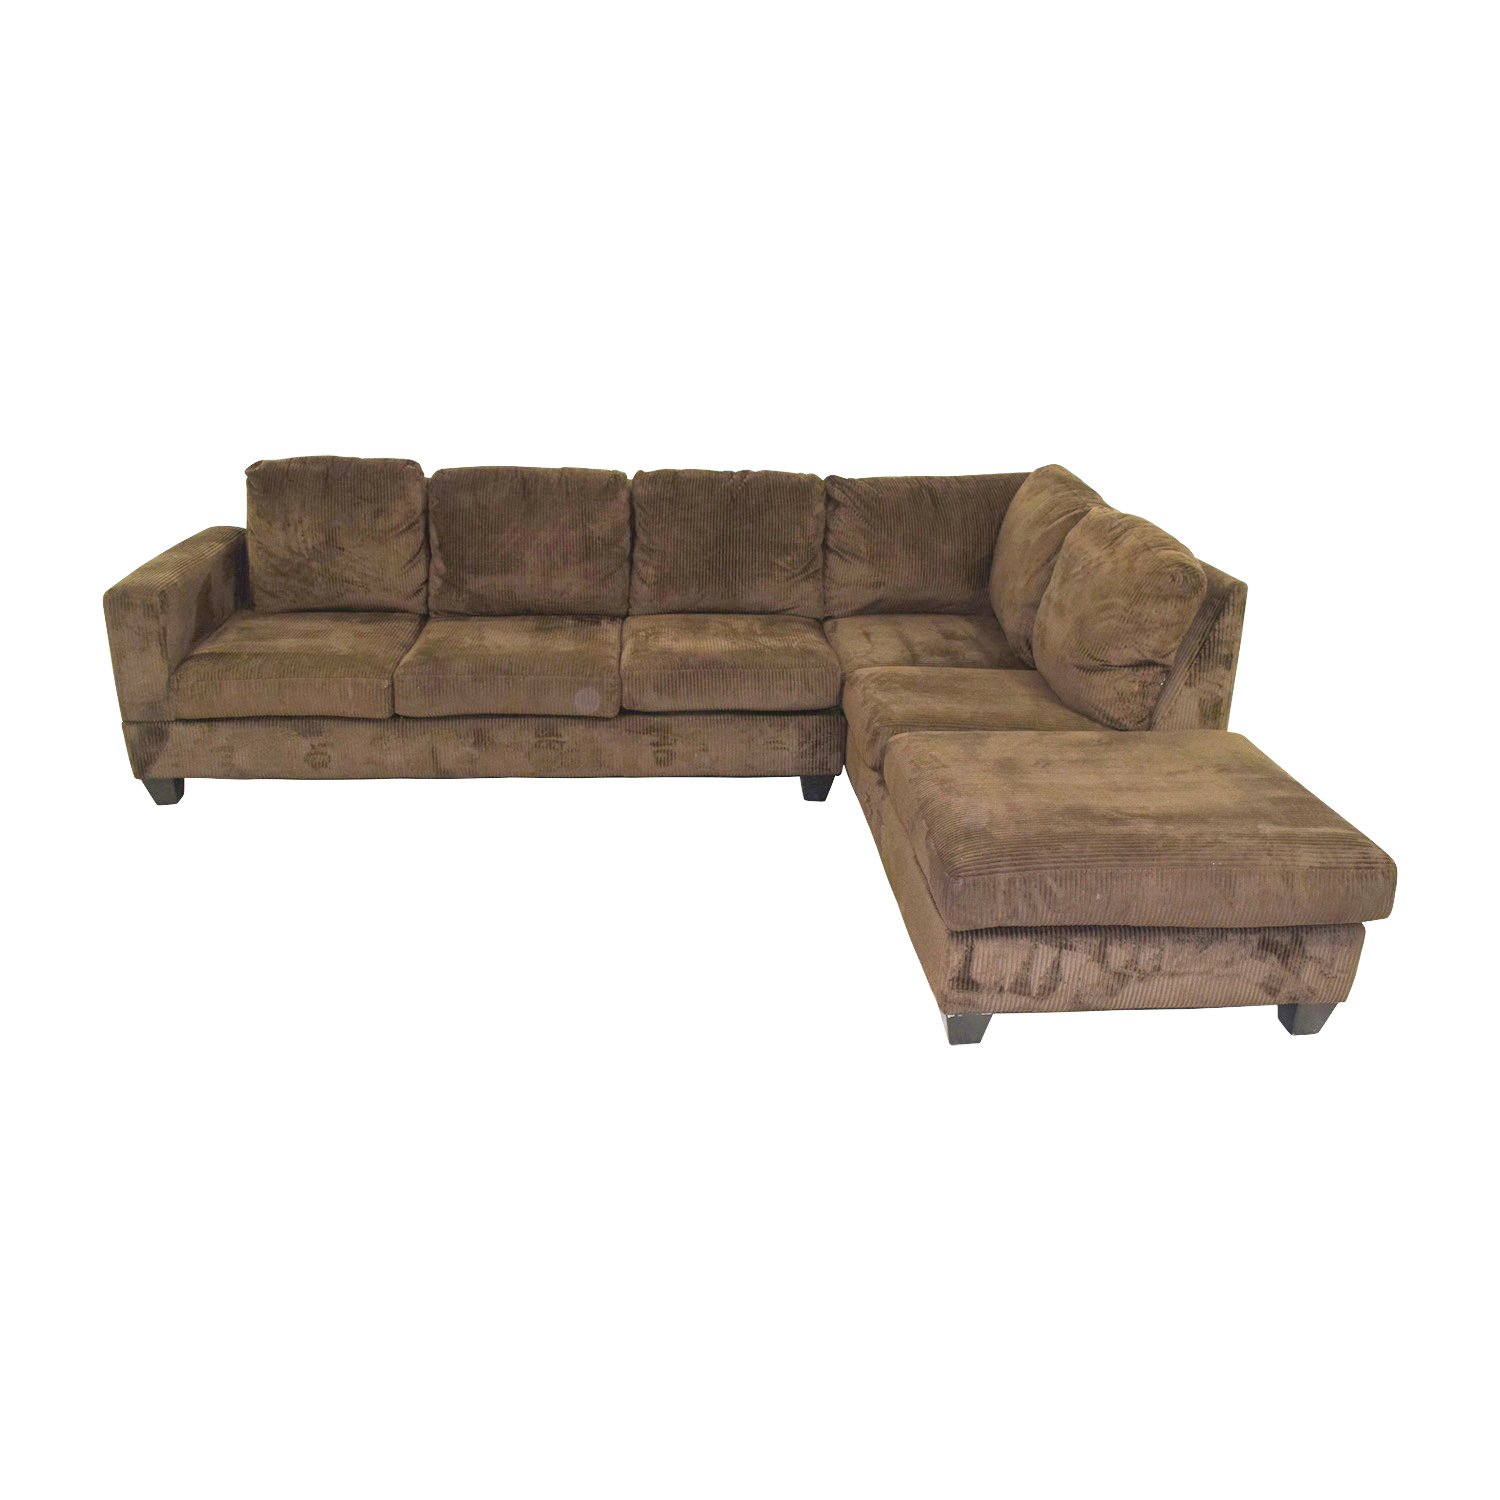 Jennifer Convertibles Jennifer Convertibles Corduroy Brown Sectional nj